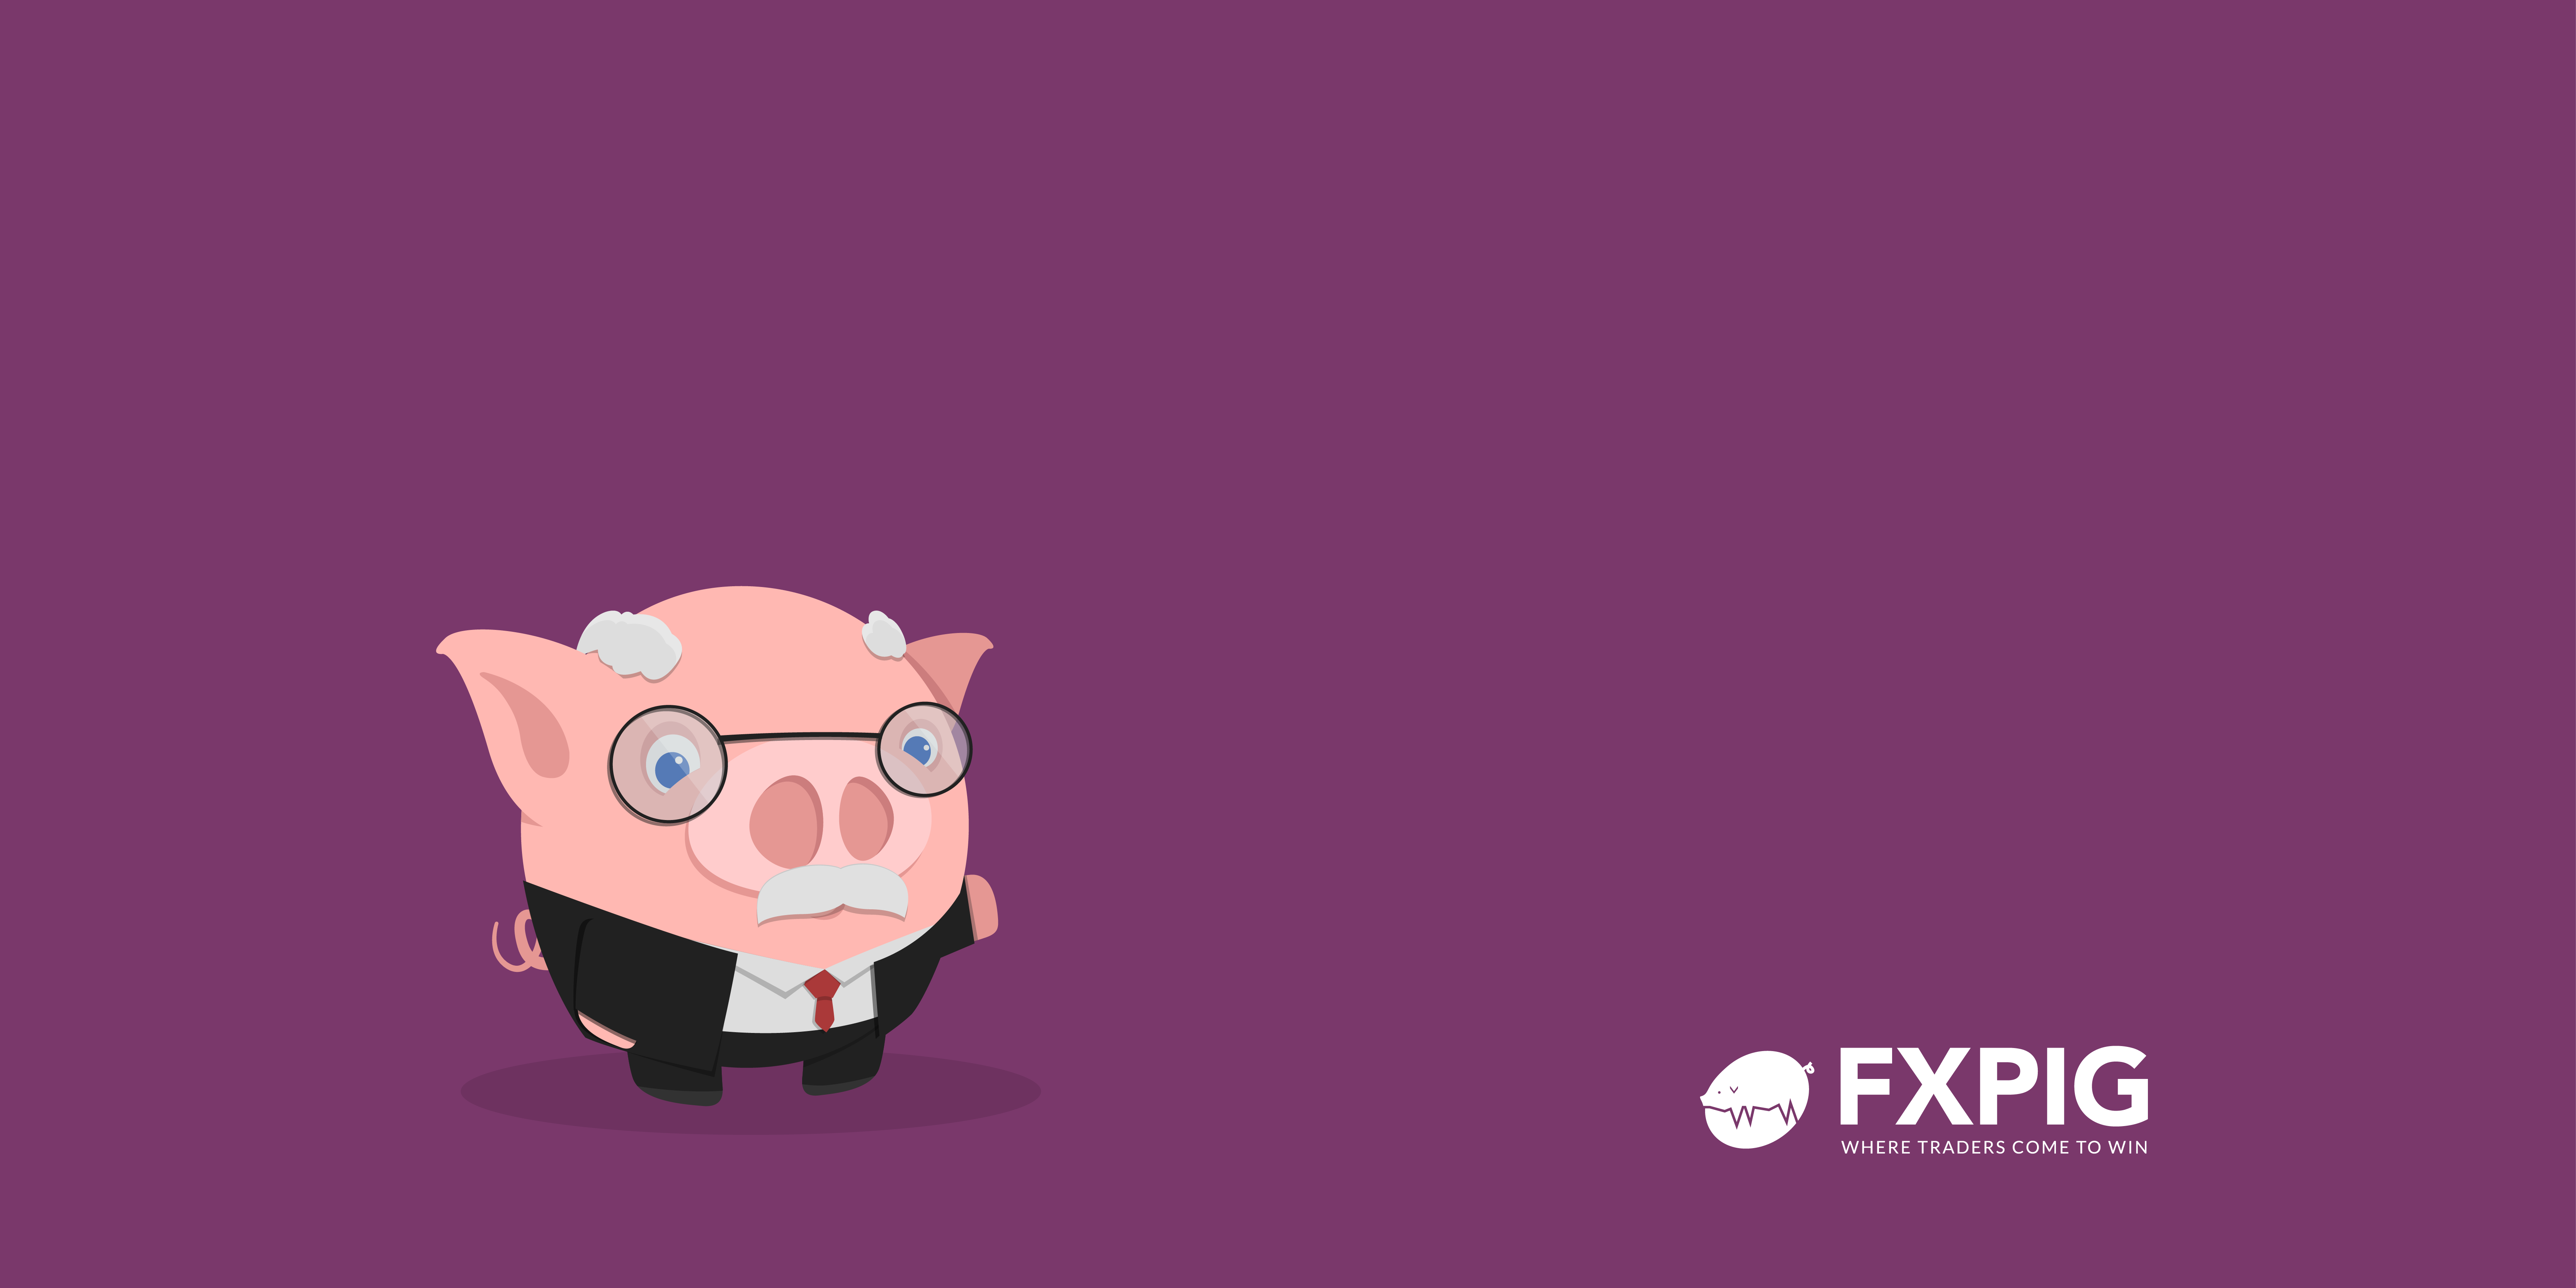 FOREX_trading-quote-pig-insider1107_FXPIG